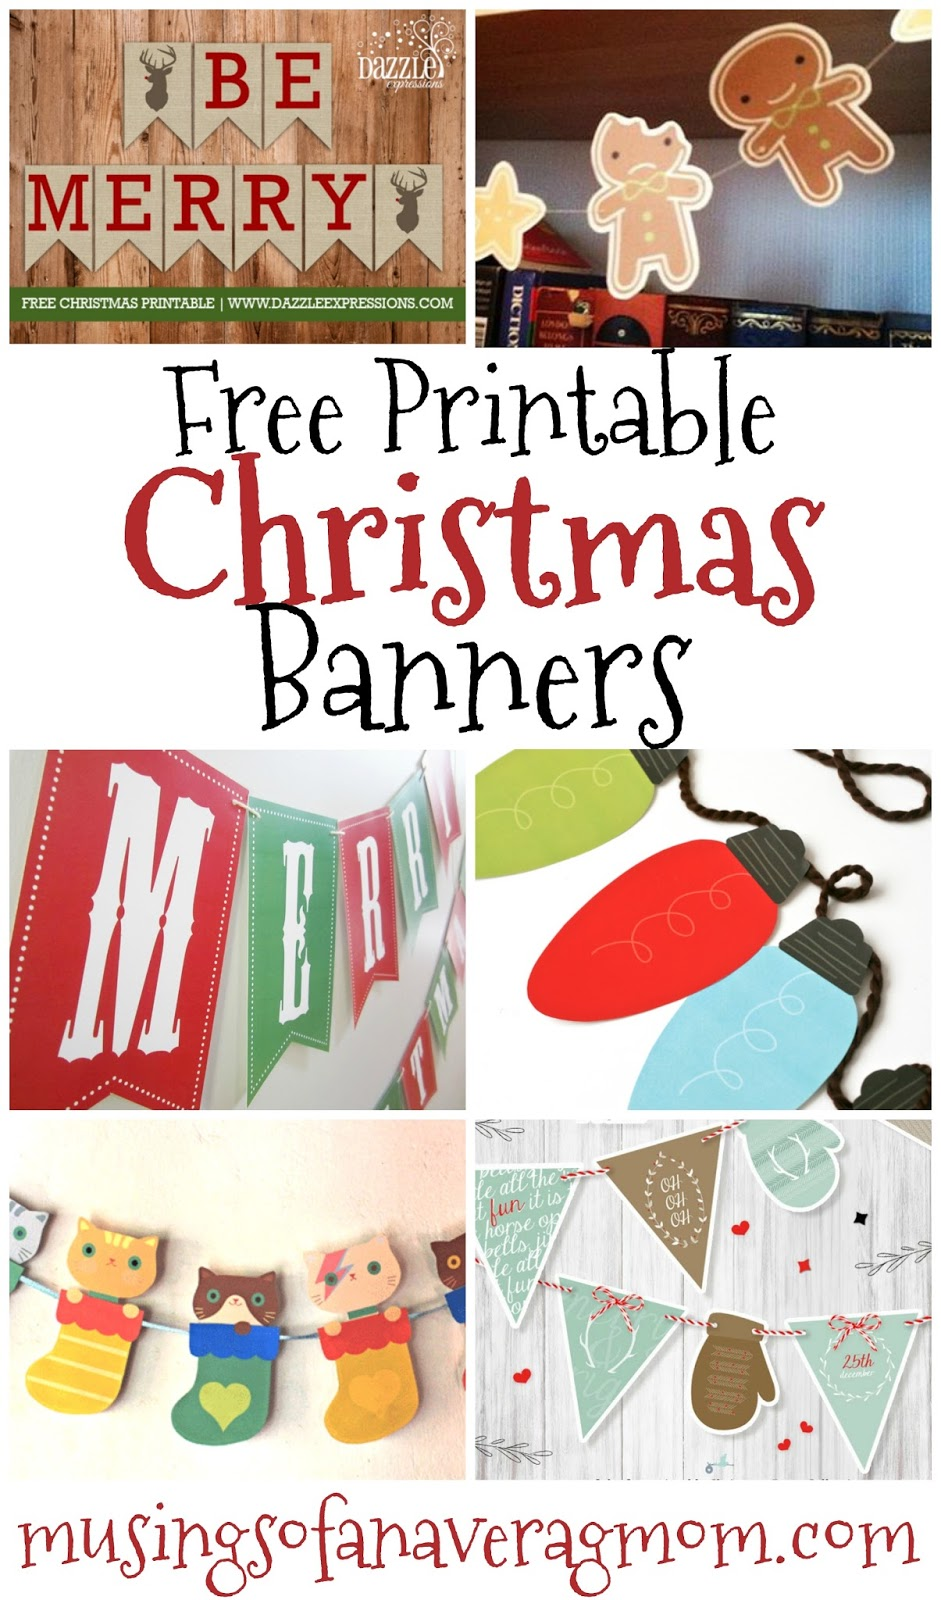 picture about Printable Merry Christmas Banner referred to as Musings of an Common Mother: Totally free printable Xmas banners